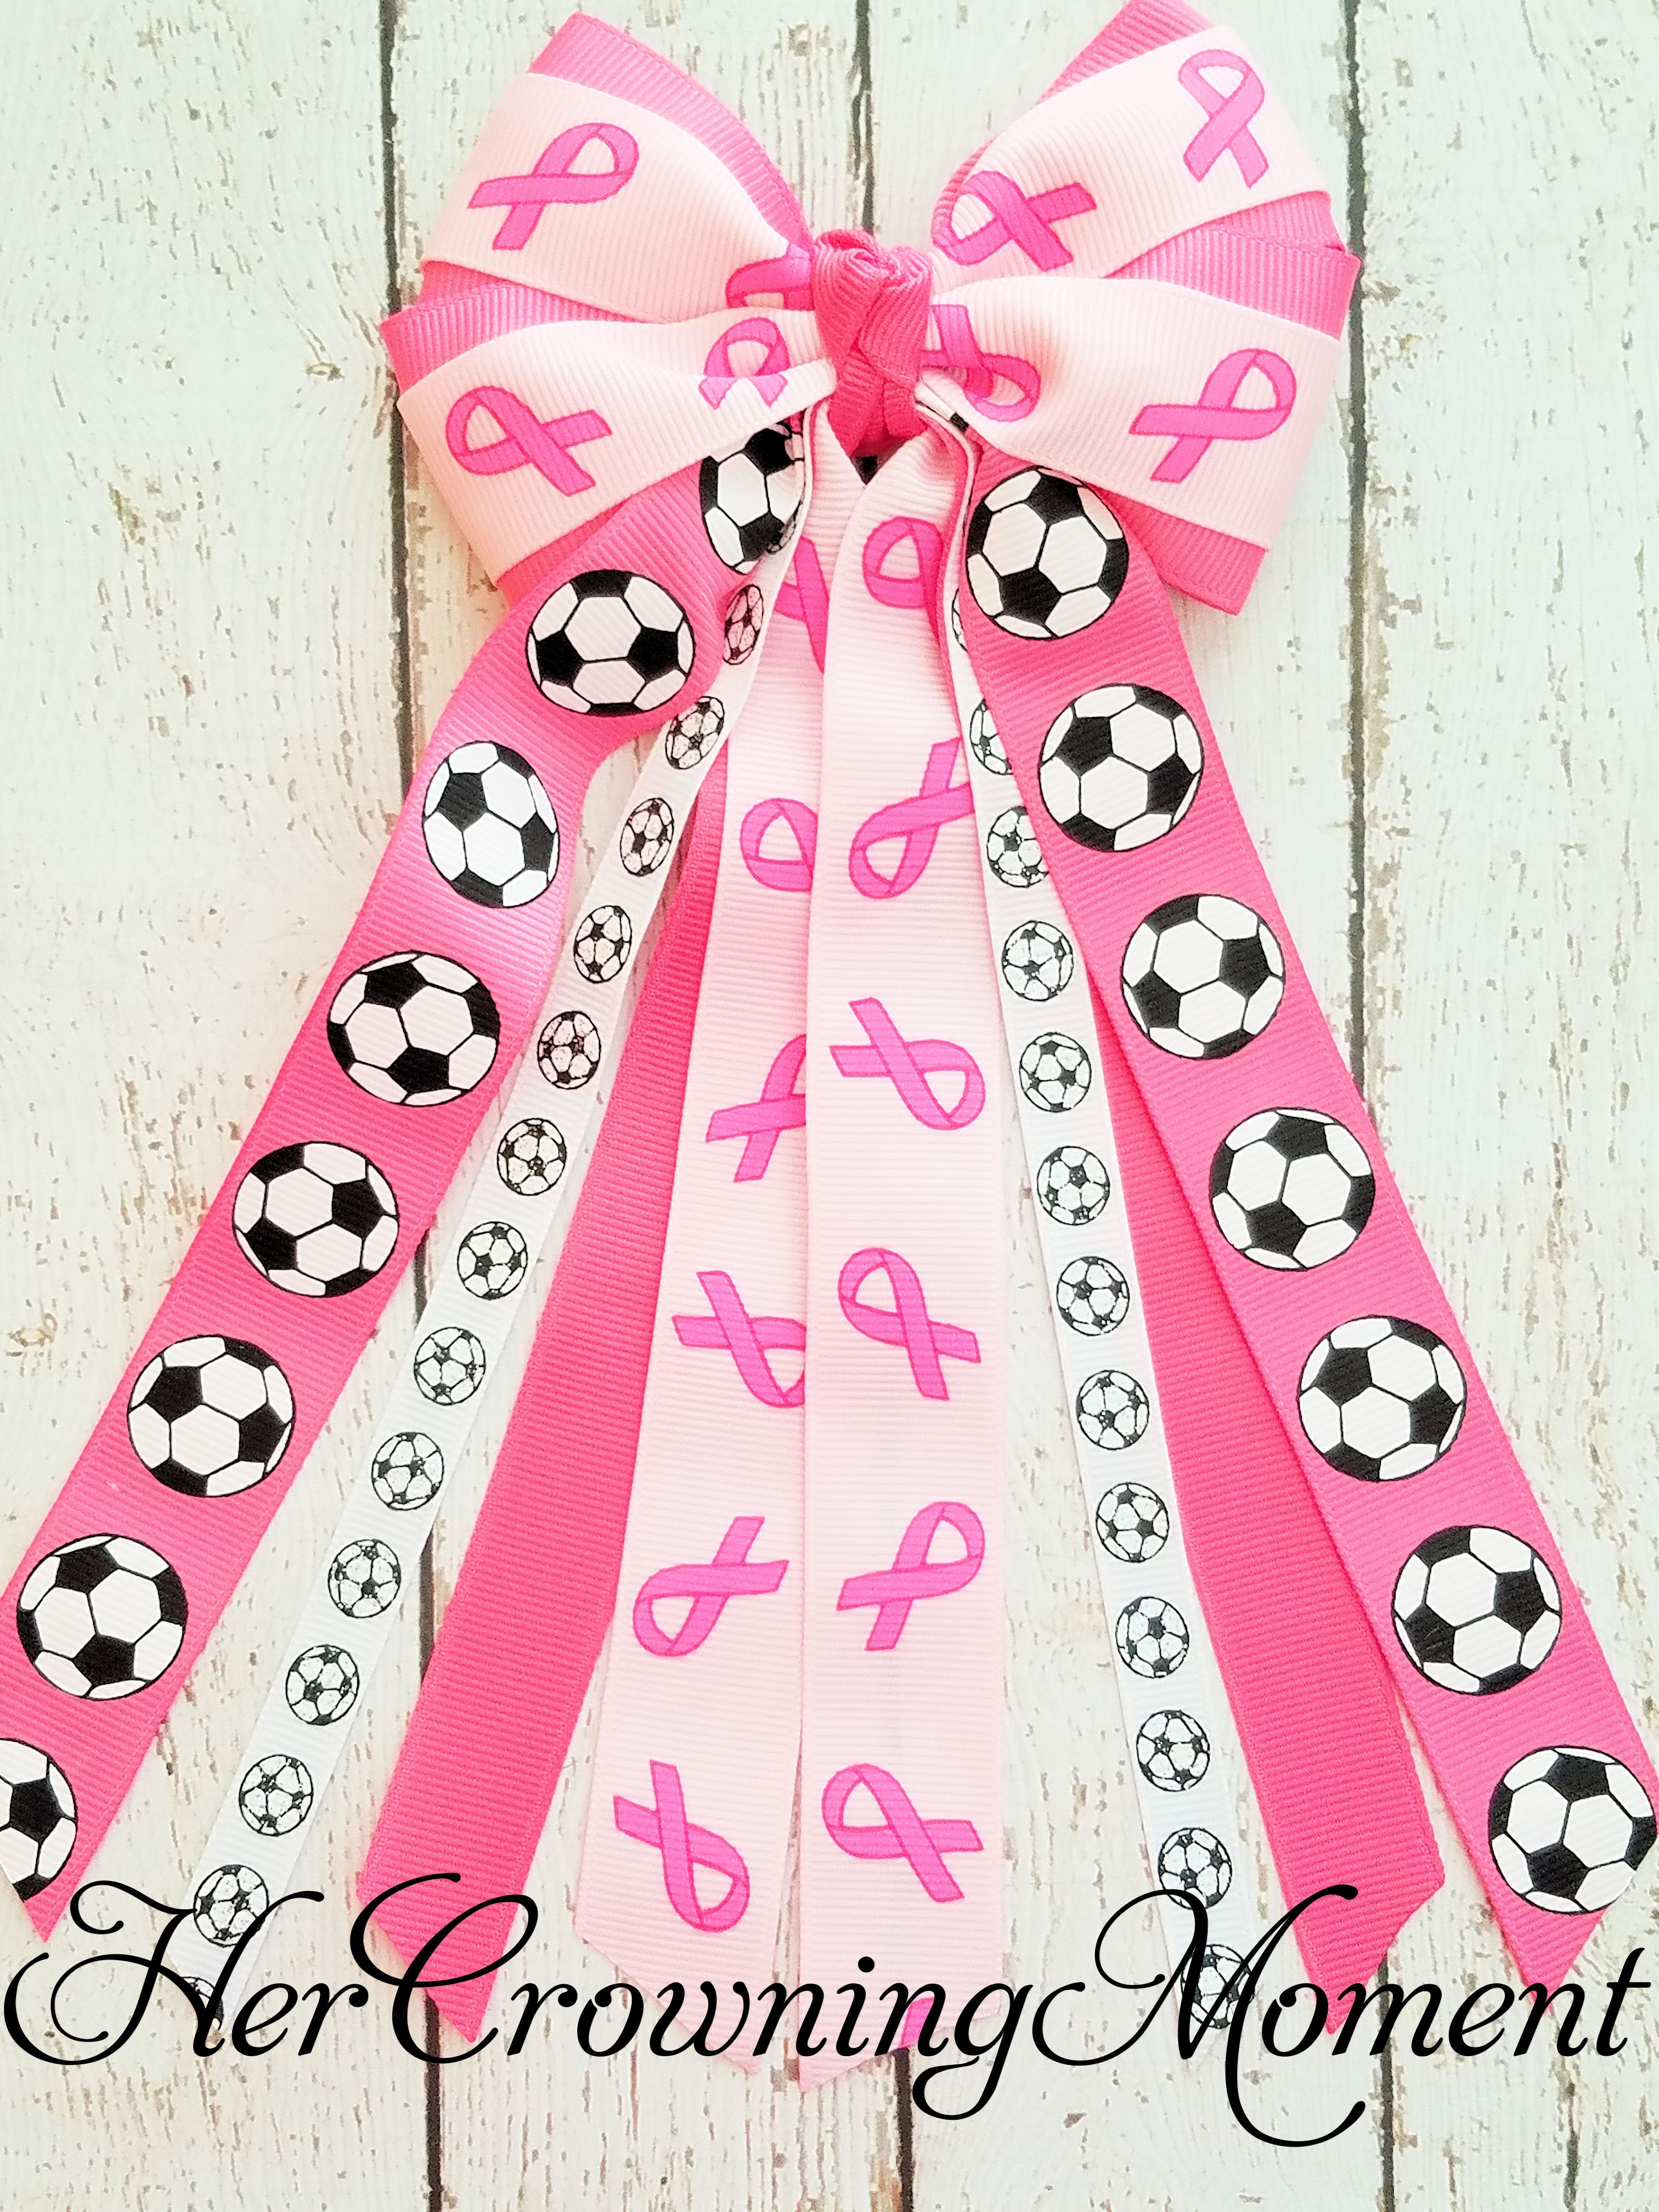 Breast Cancer Awareness Month and Soccer